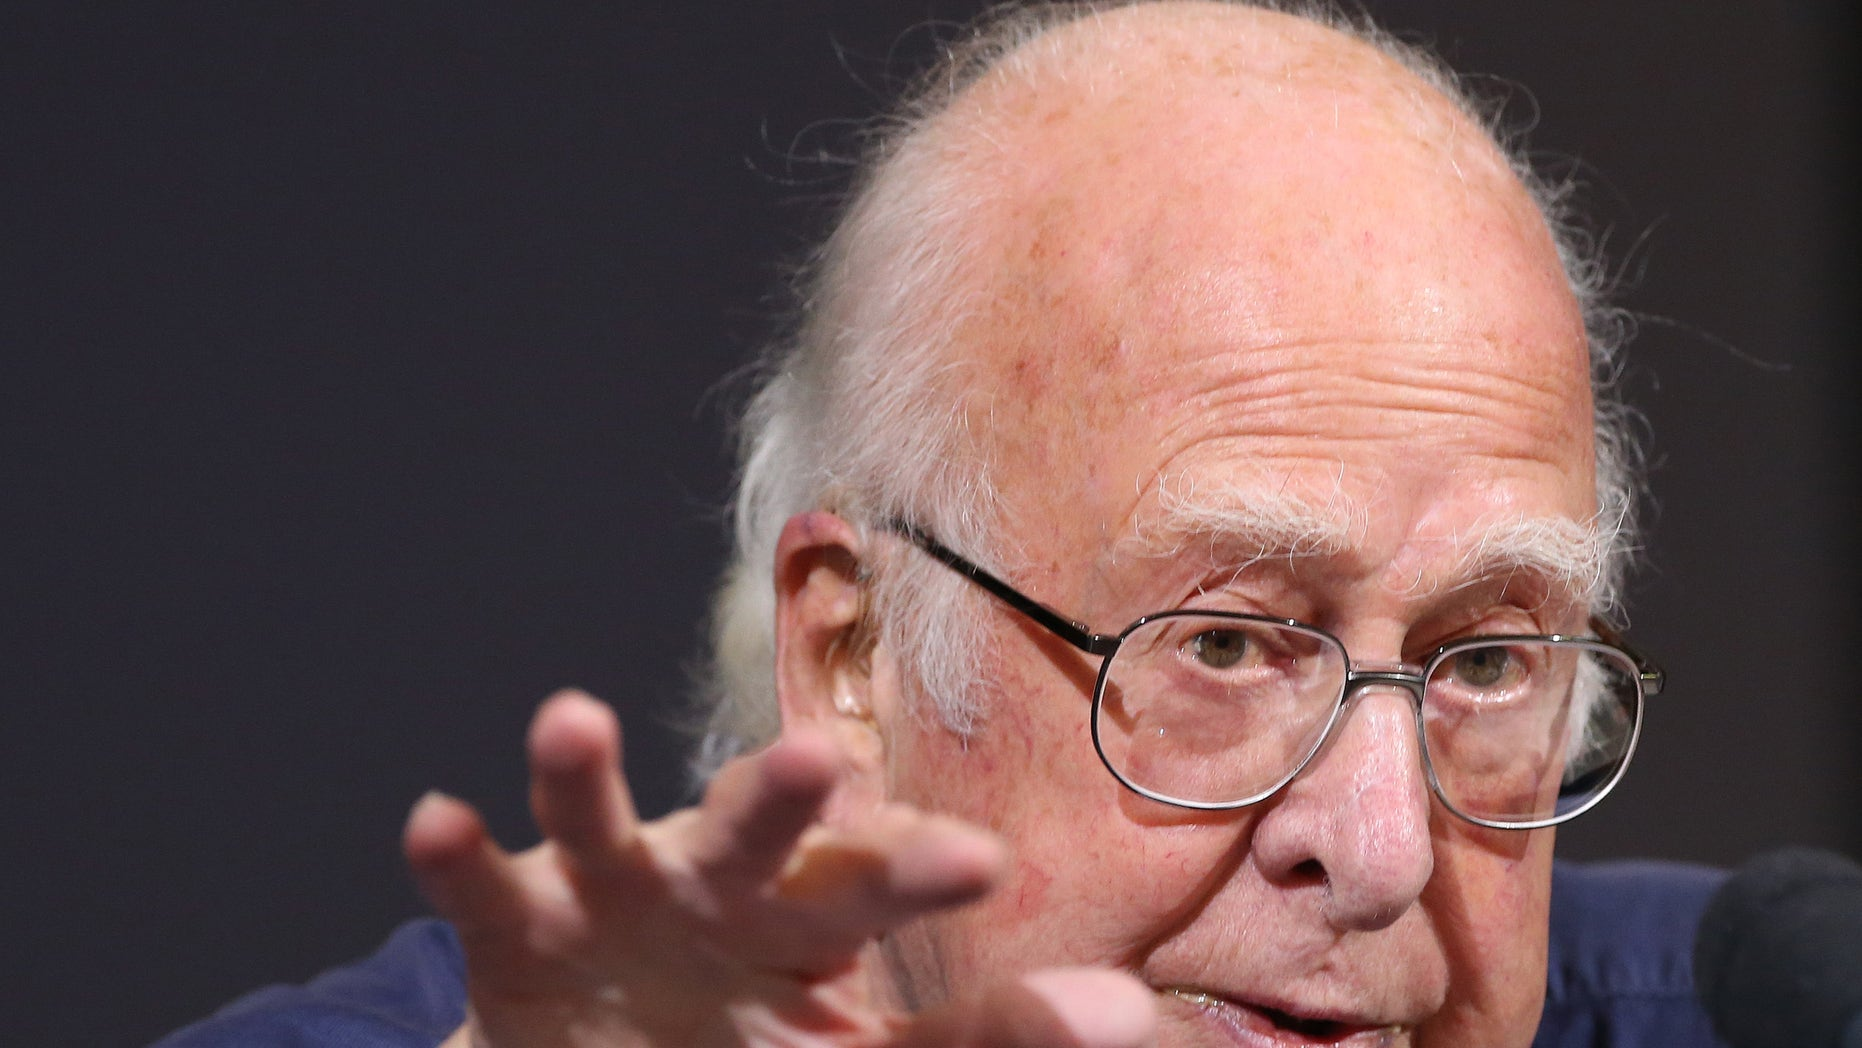 Oct. 11, 2013: Britain's Professor Peter Higgs gestures during a press conference in Edinburgh, Scotland in this file photo.